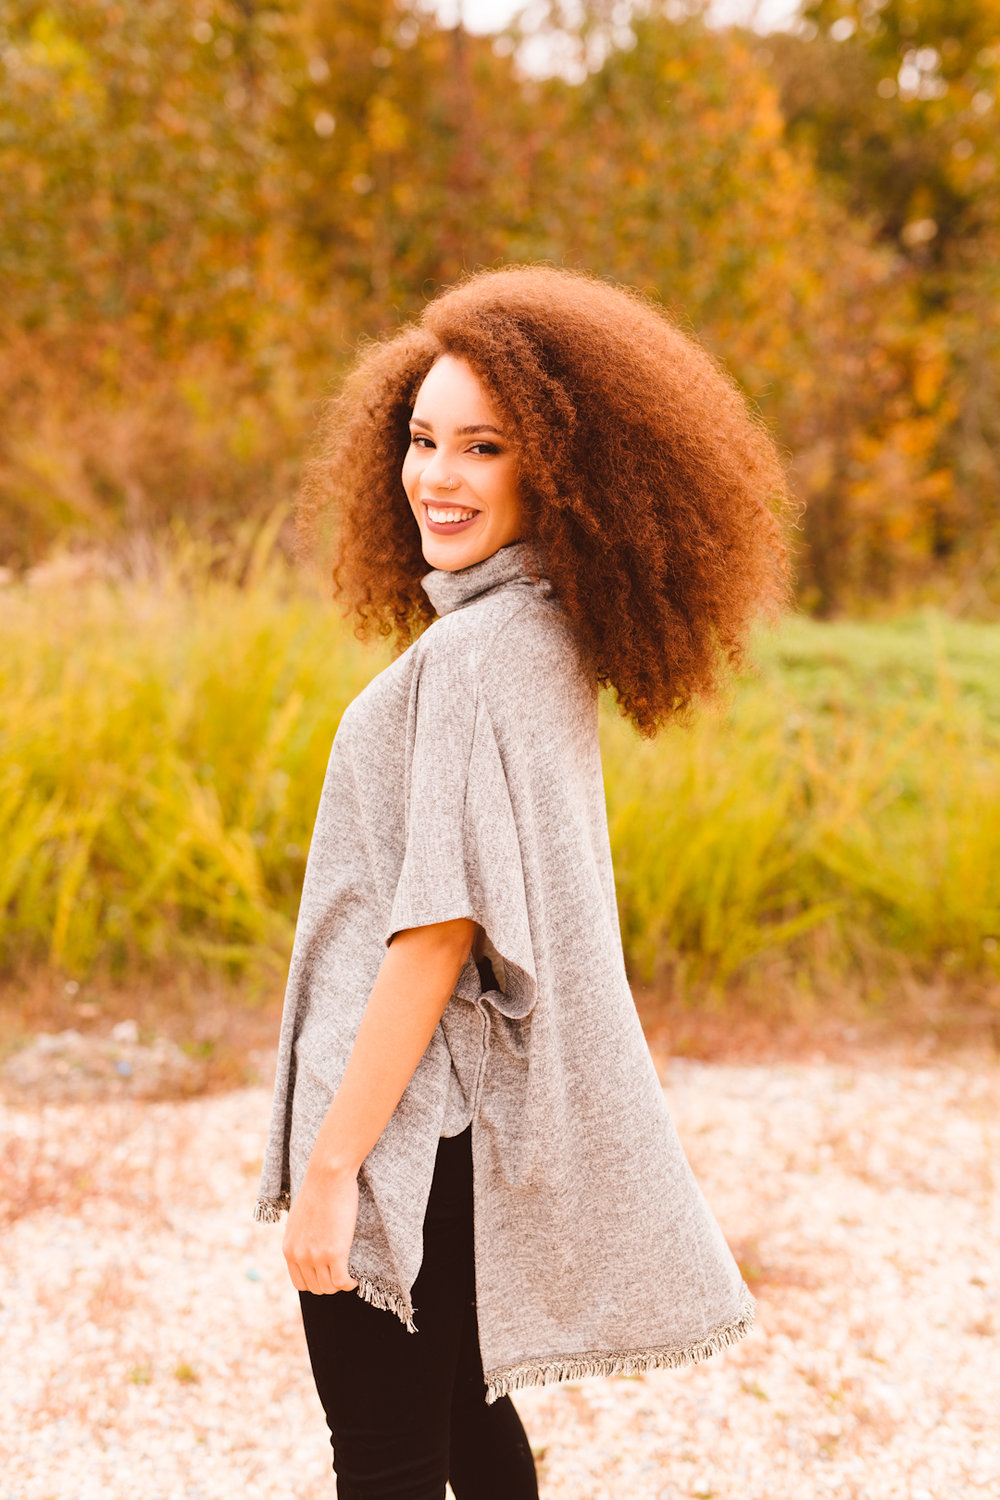 Maryland Fashion Boutique - Fall Look Book - Brooke Michelle Photography